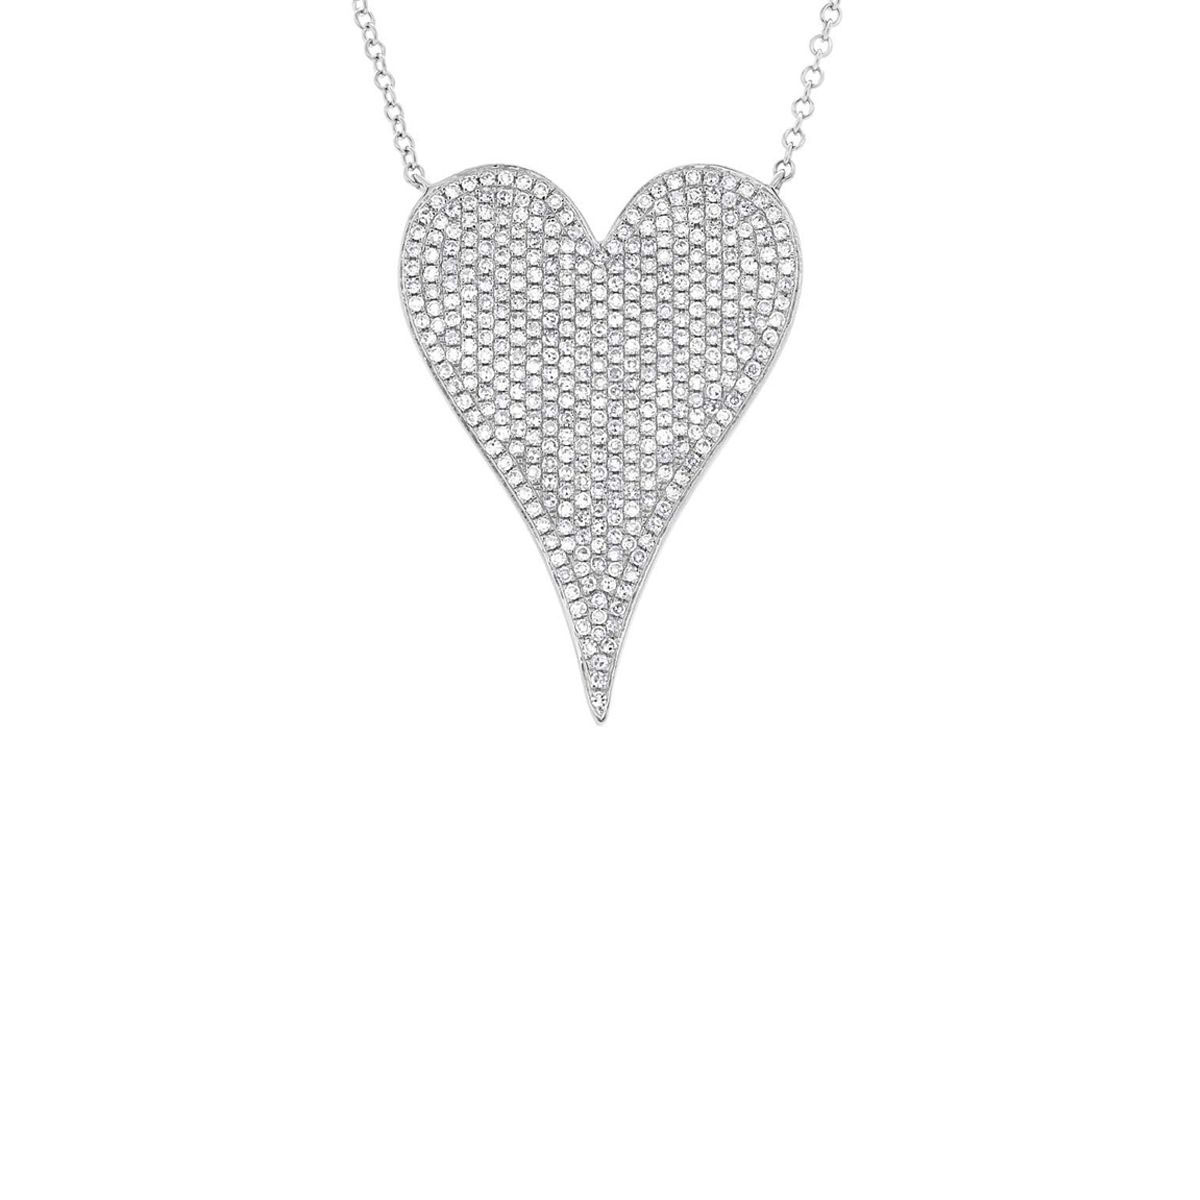 jewelry_London Collection 14k Gold Heart Pendant Necklace